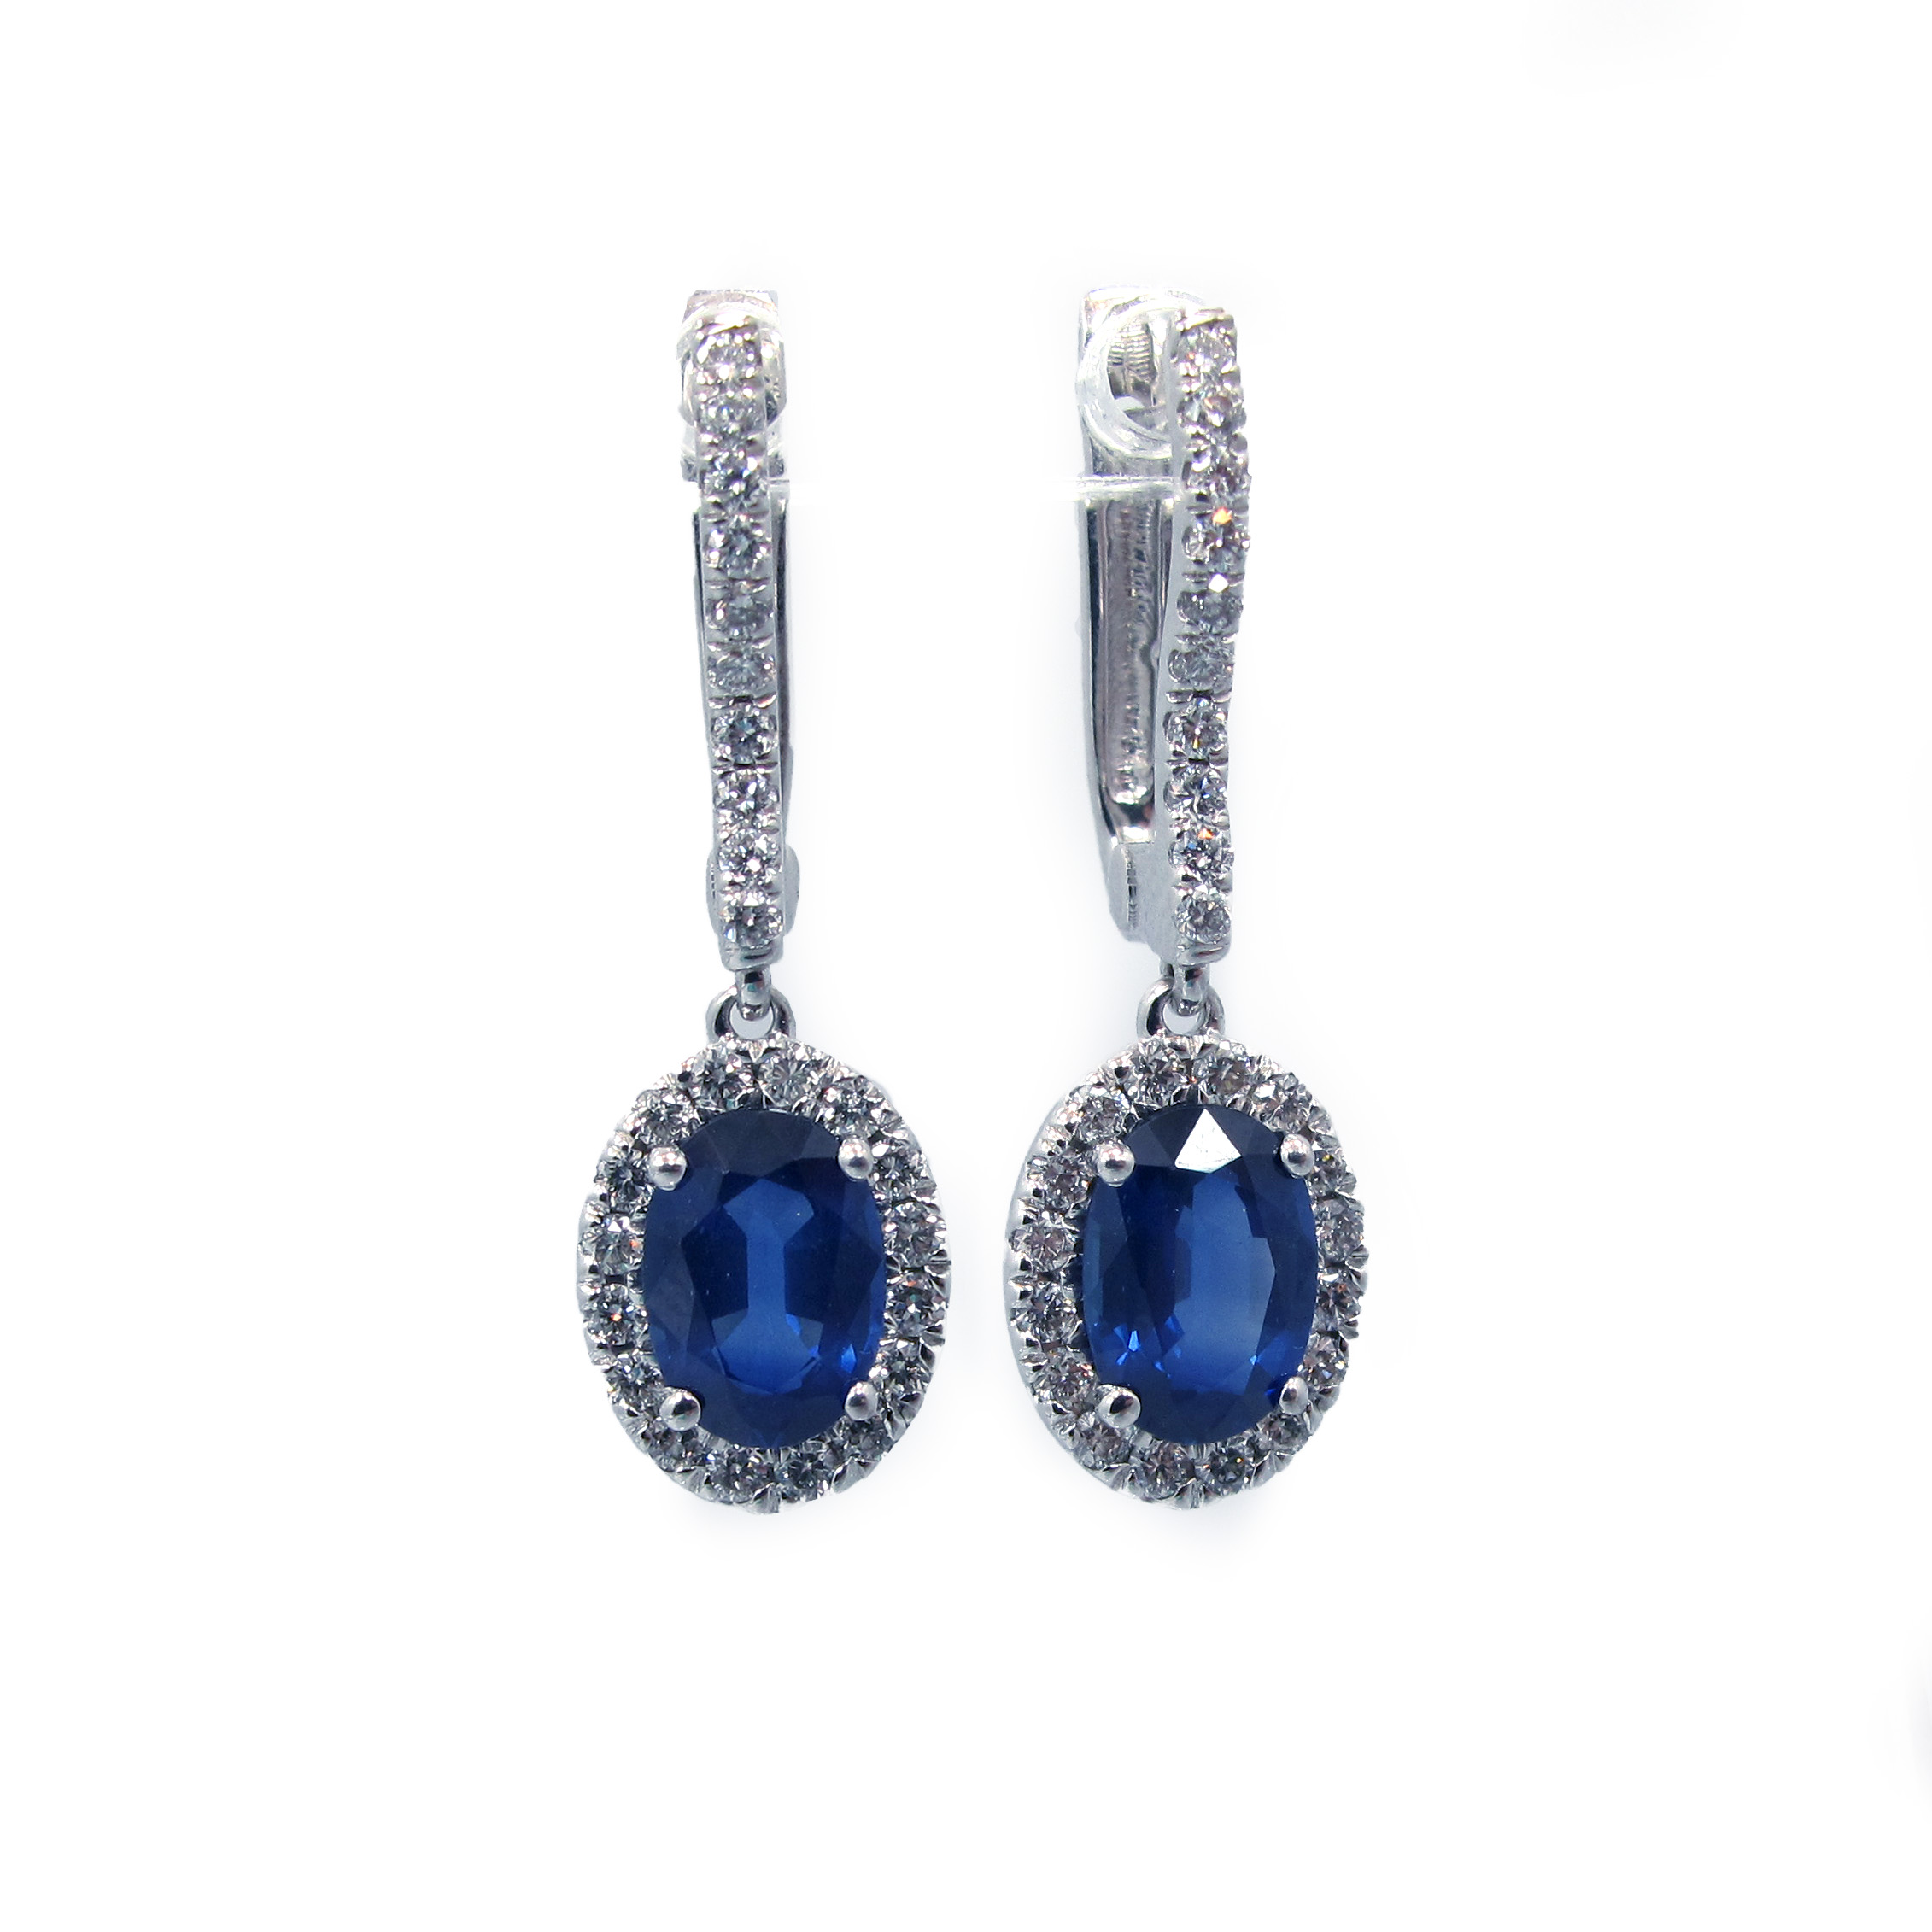 gold blue earrings detailmain lrg in and sapphire saphire main phab diamond white nile